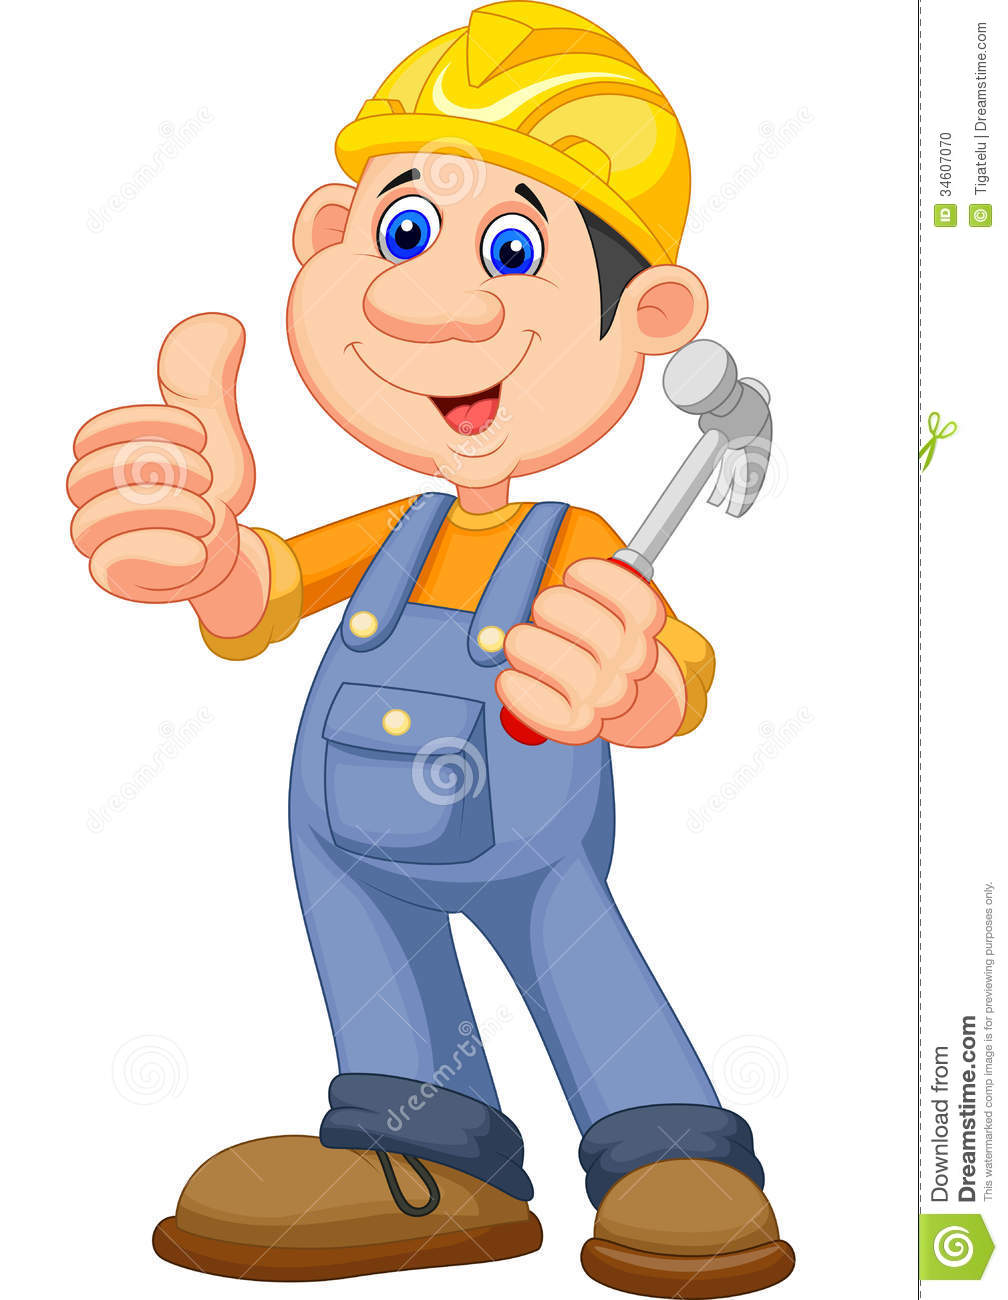 Animated construction worker clipart.